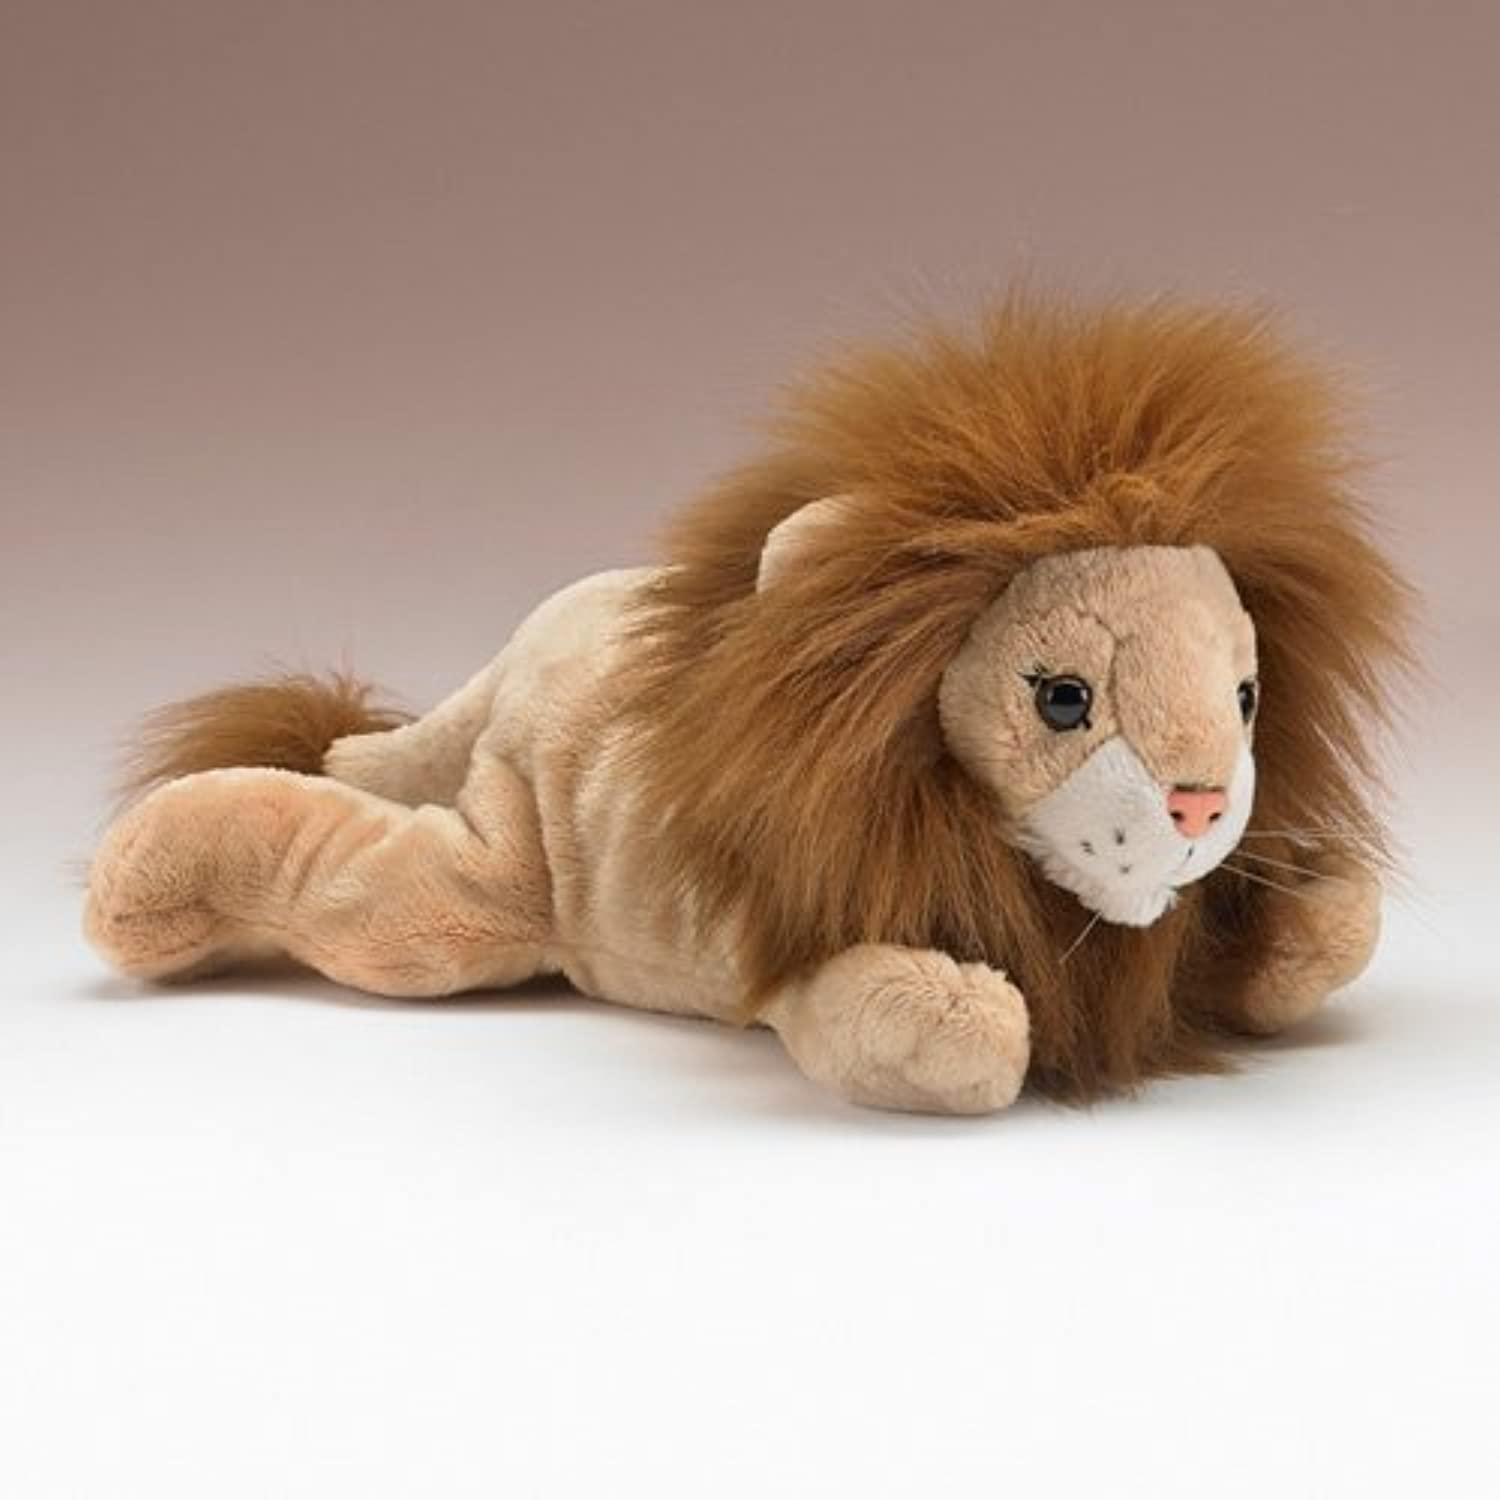 Lion Lying Stuffed Animal Plush Toy 12 L by Wildlife Artists